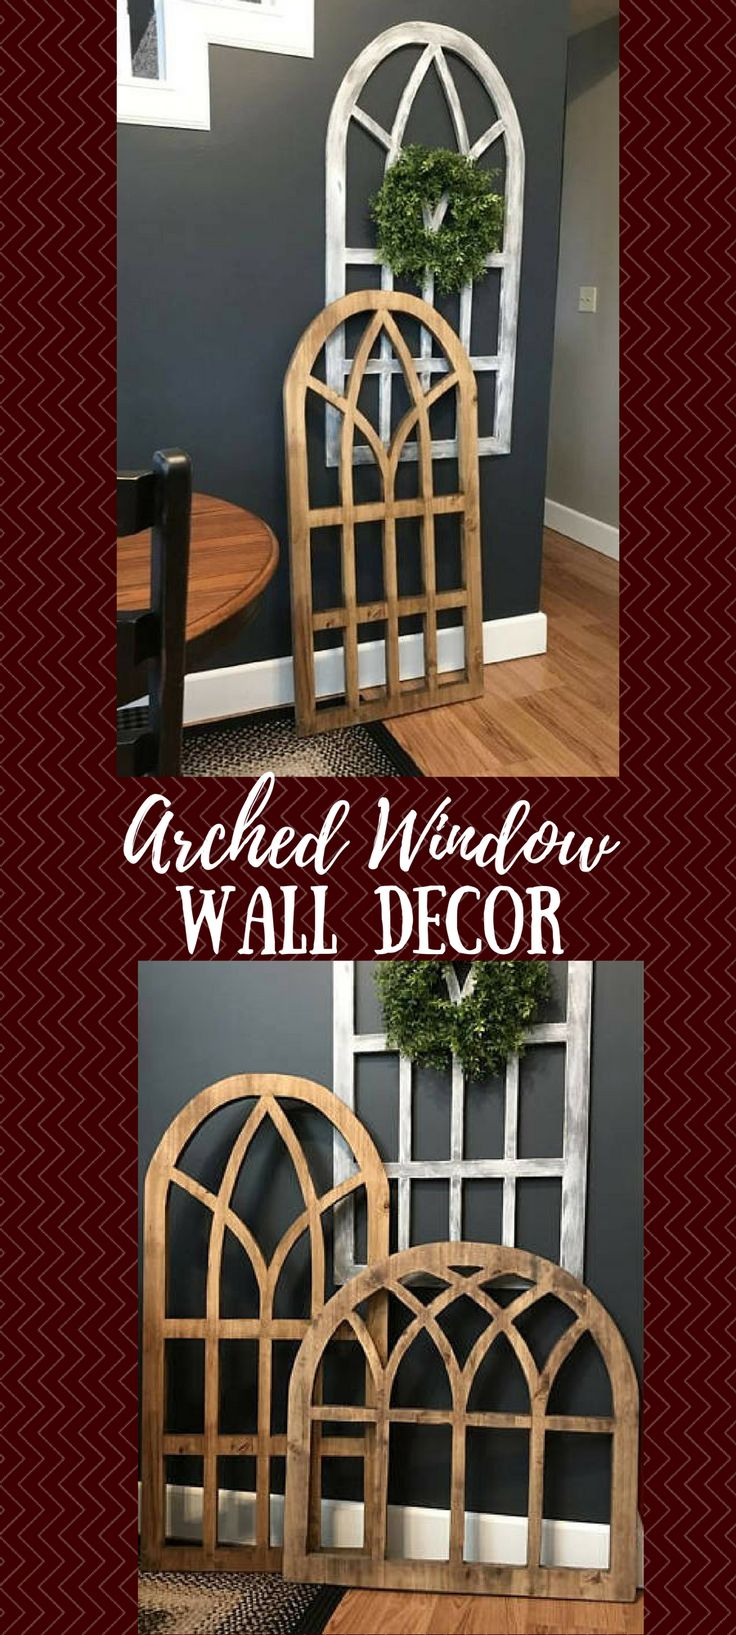 I love the look of wooden arched window decor.  This would be great in my dining room. #ad